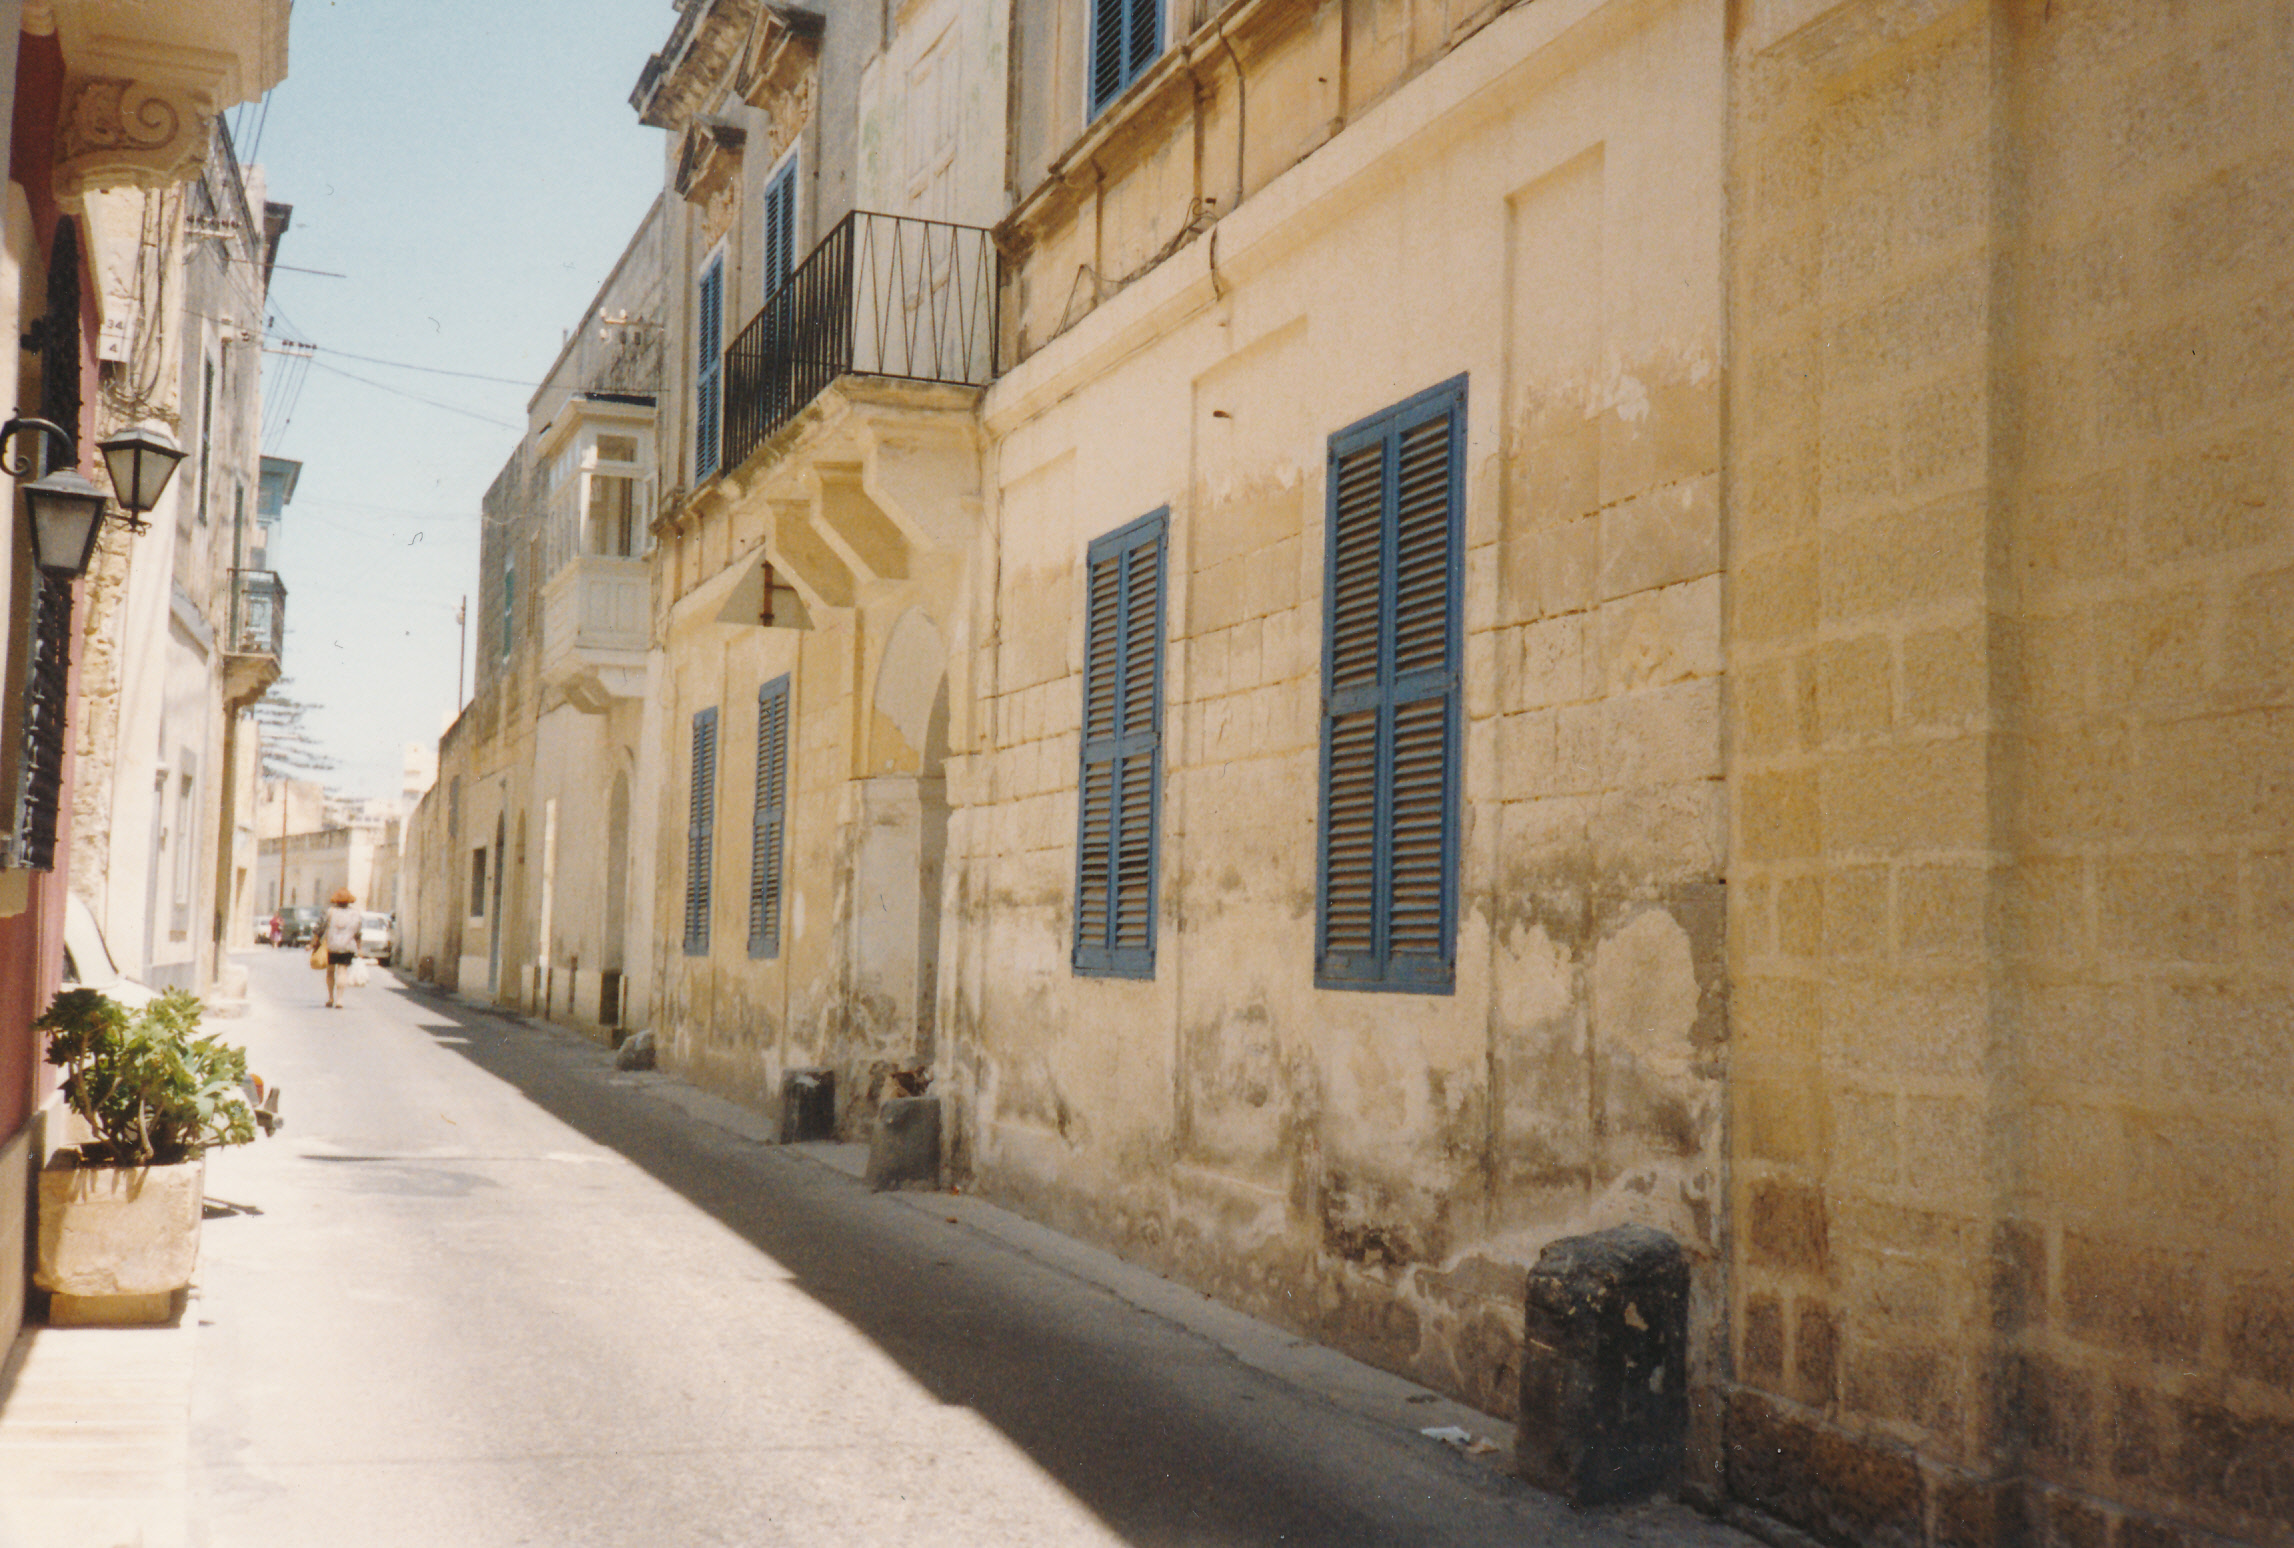 Burgess's house in Malta